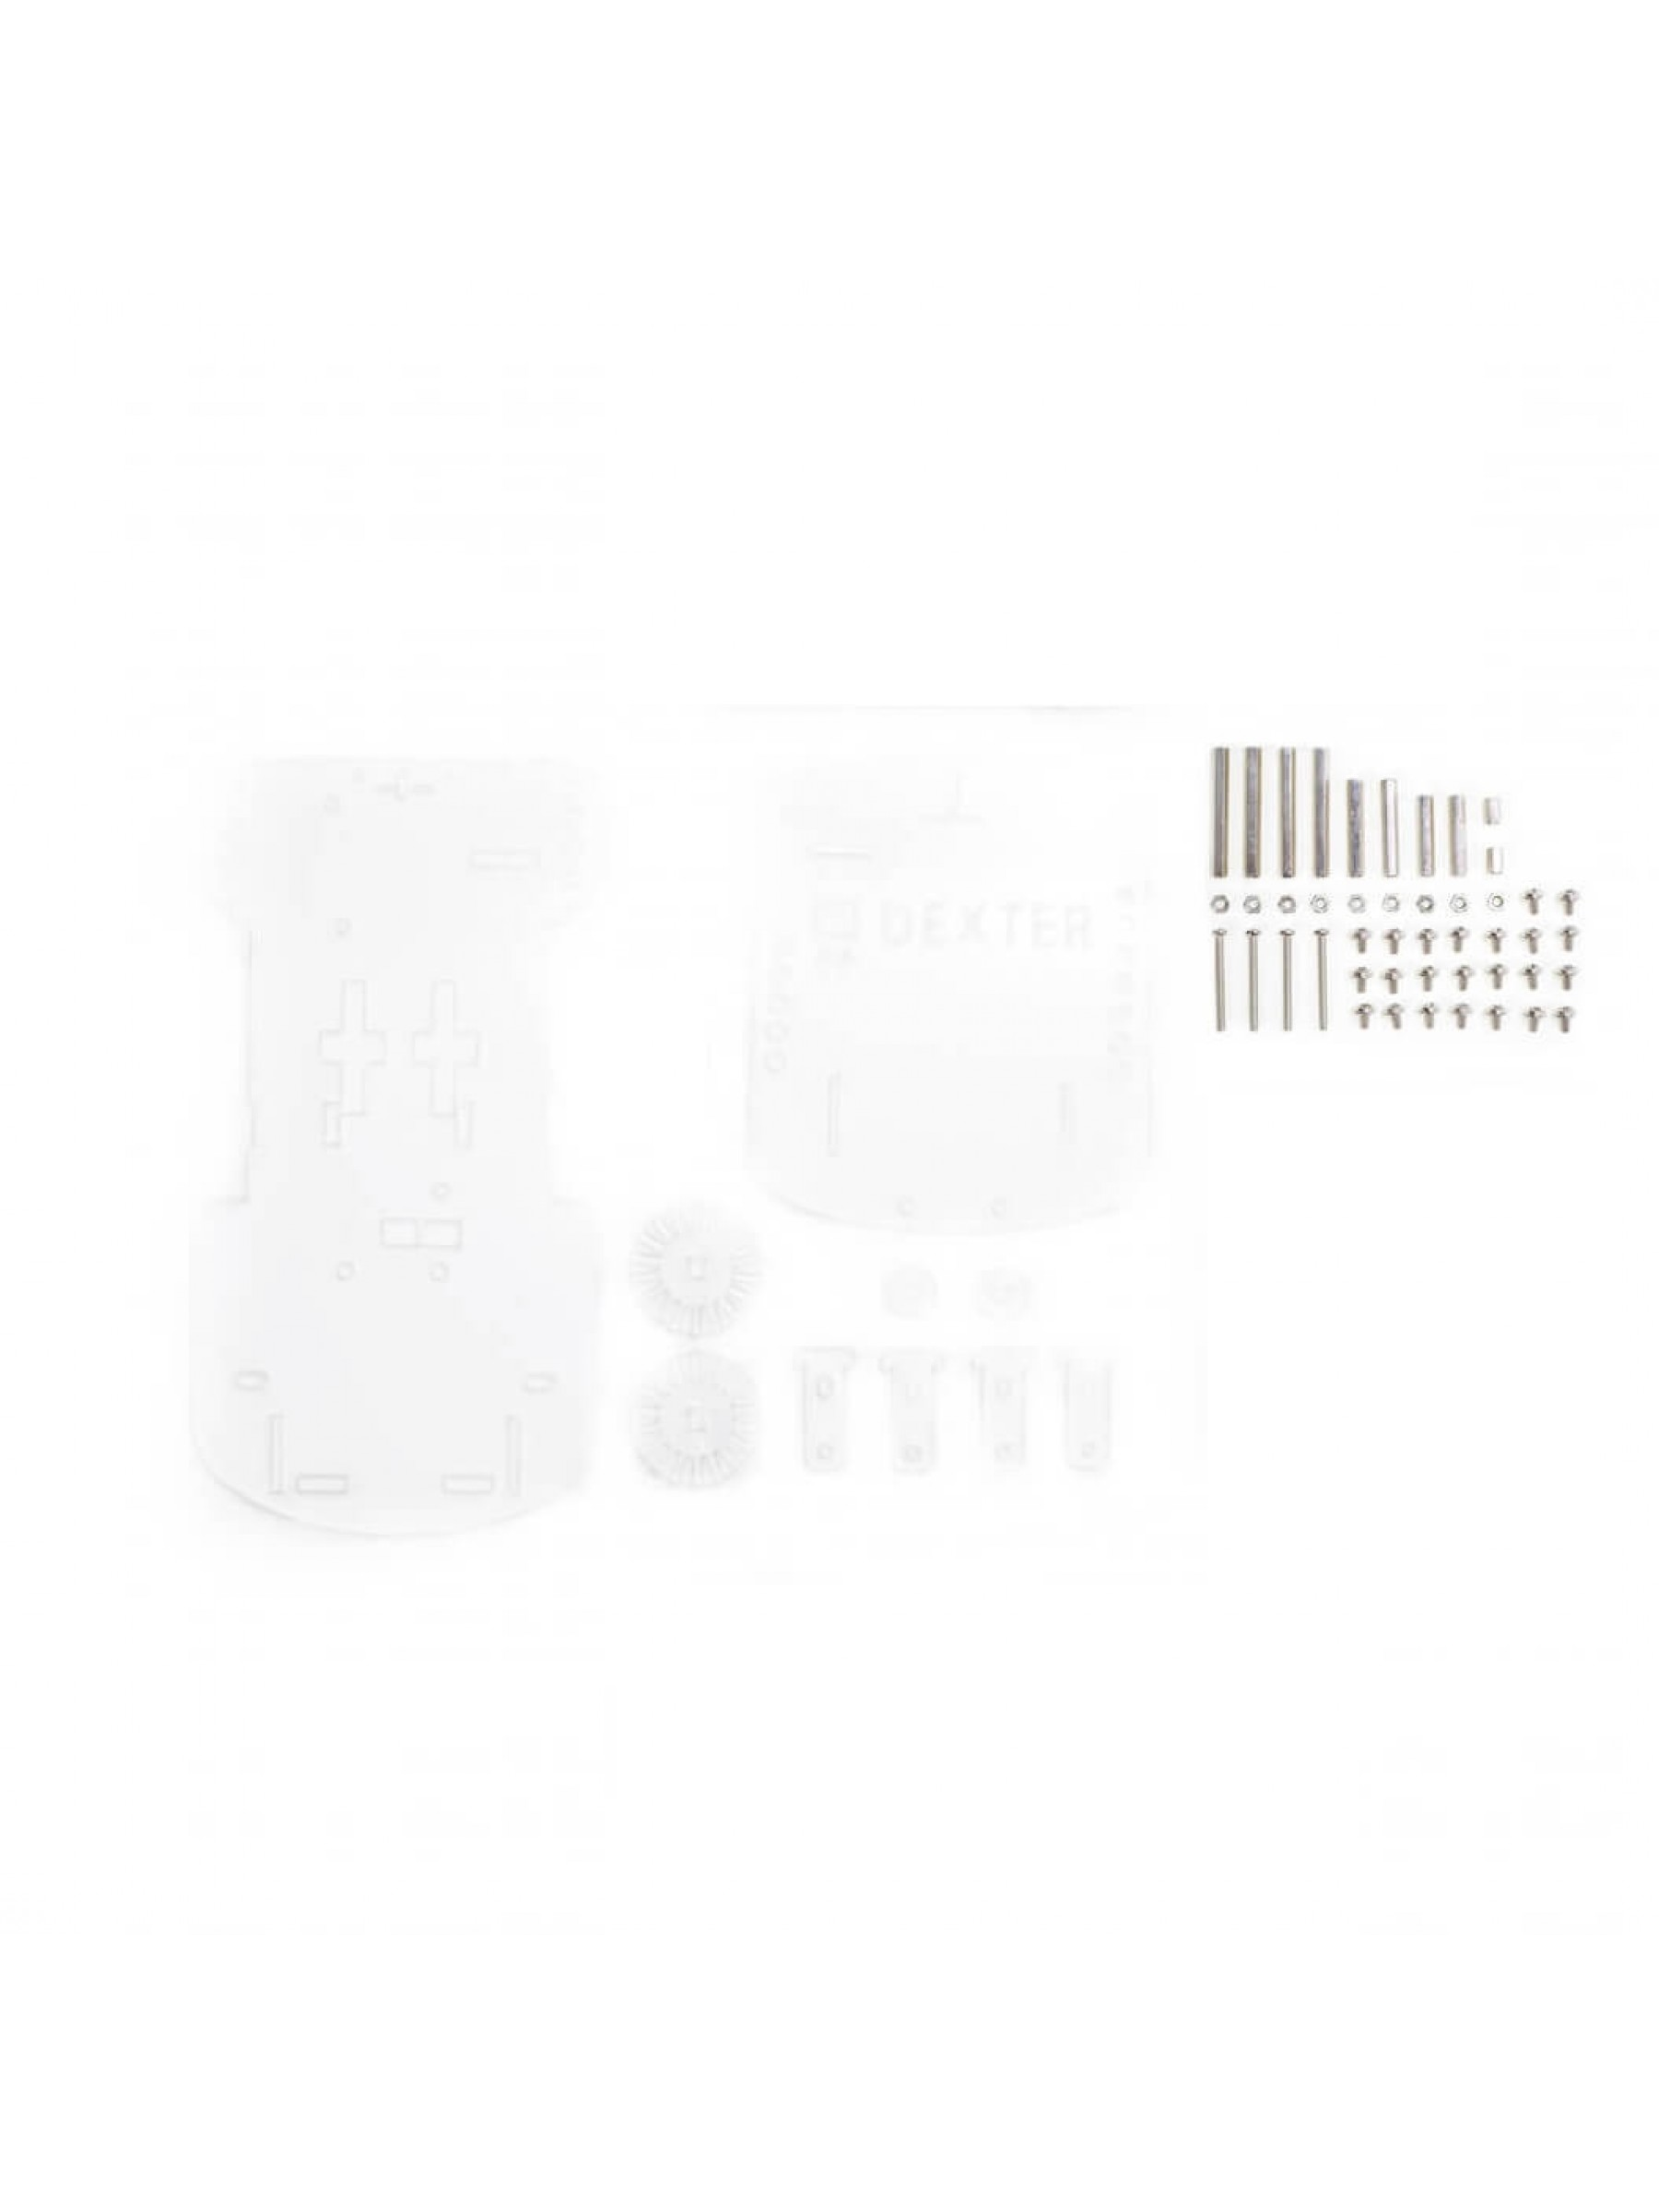 GoPiGo2 Acrylic Body – Clear